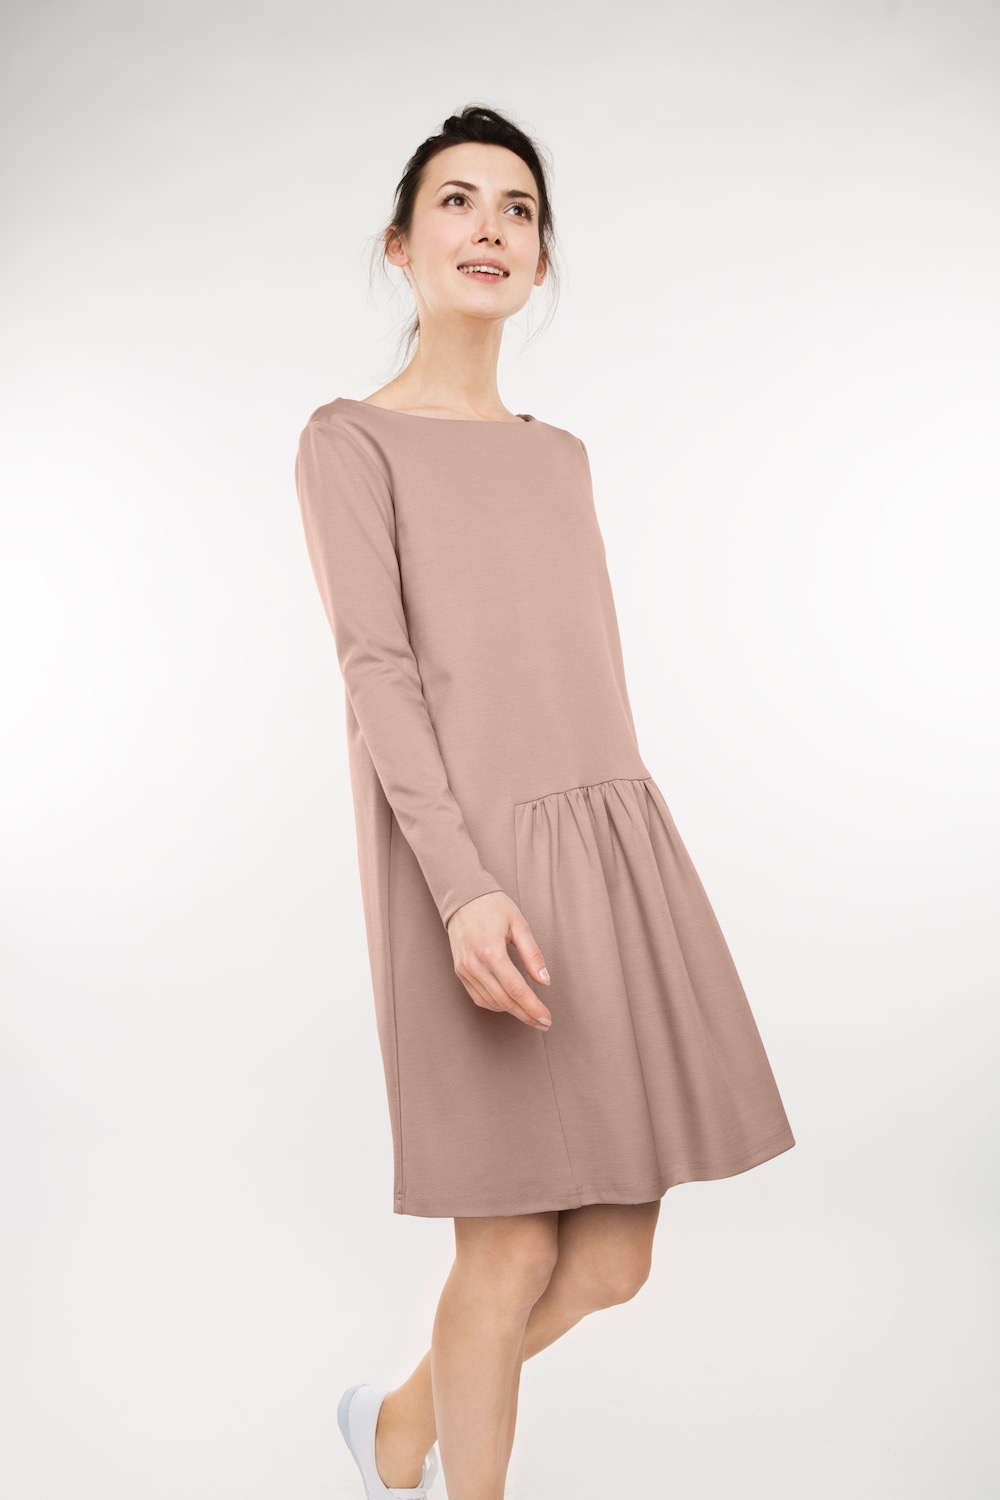 LeMuse nude MILK dress